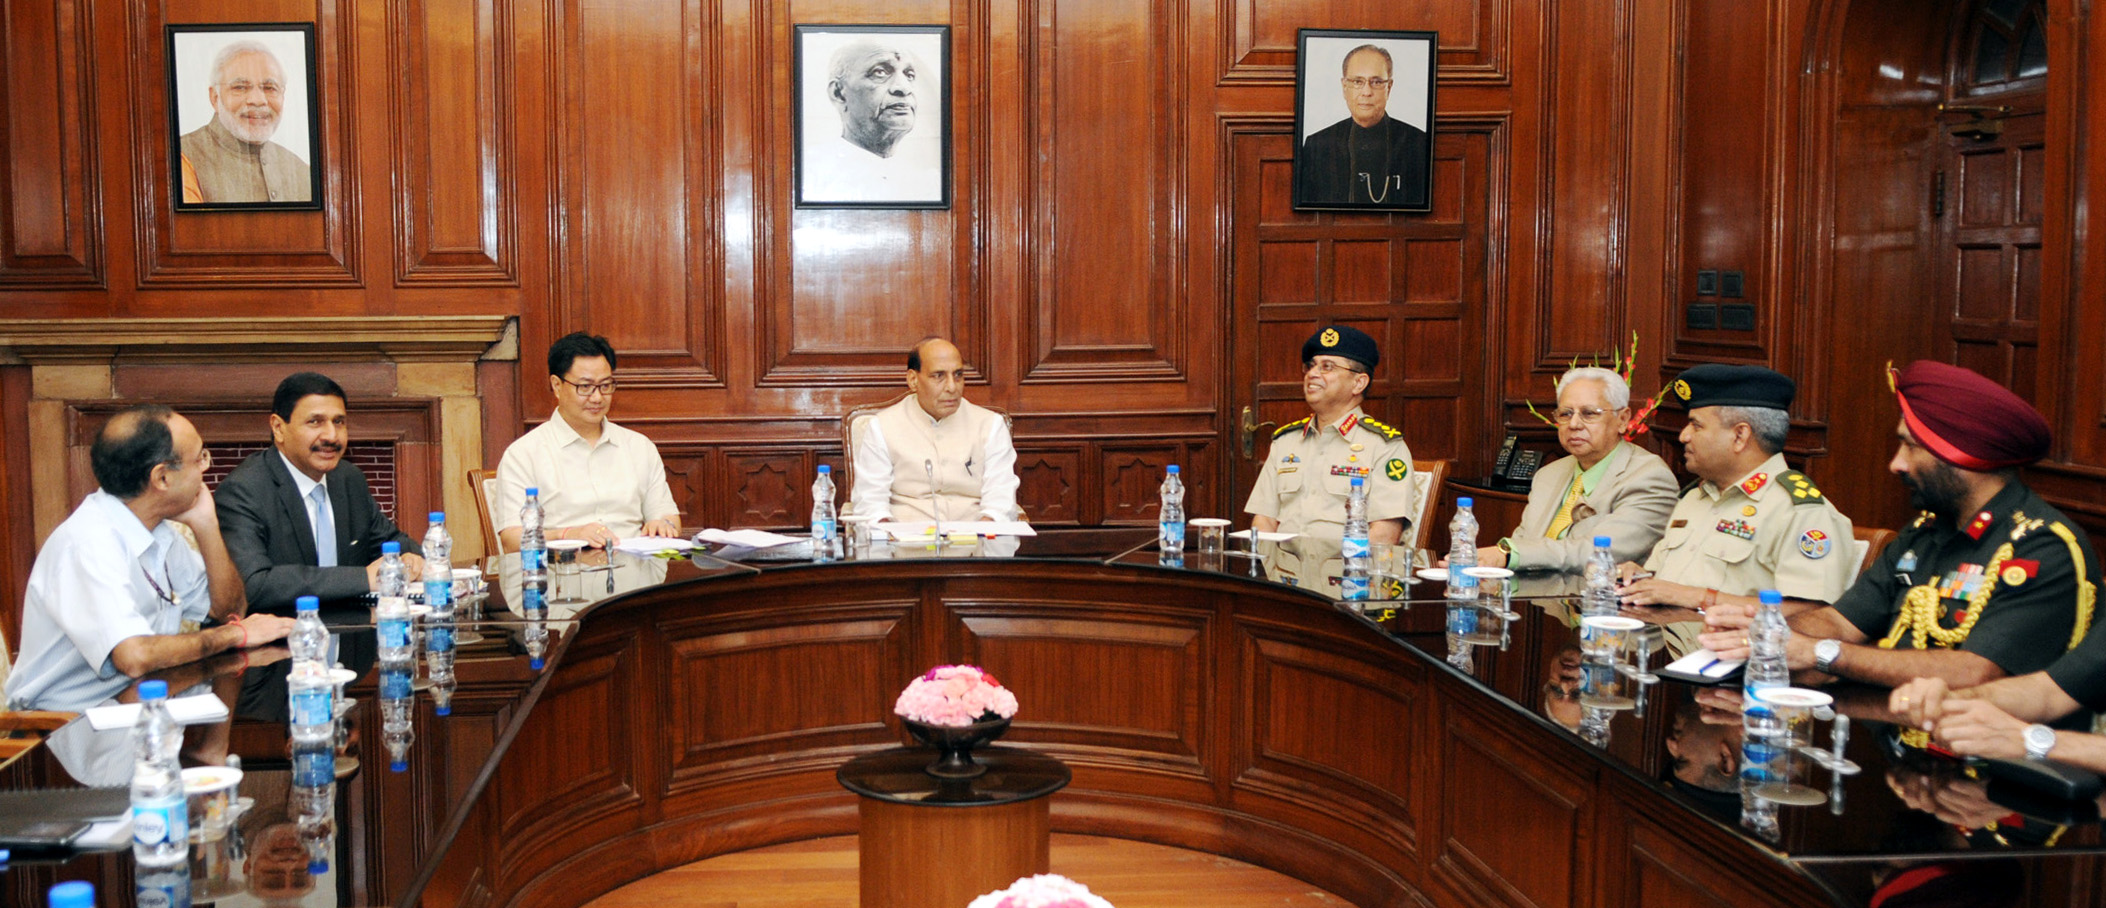 The Bangladesh Chief of Army Staff, General Abu Belal Muhammad Shafiul Huq calling on the Union Home Minister, Shri Rajnath Singh, in New Delhi on September 09, 2015.   The Minister of State for Home Affairs, Shri Kiren Rijiju and other dignitaries are also seen.